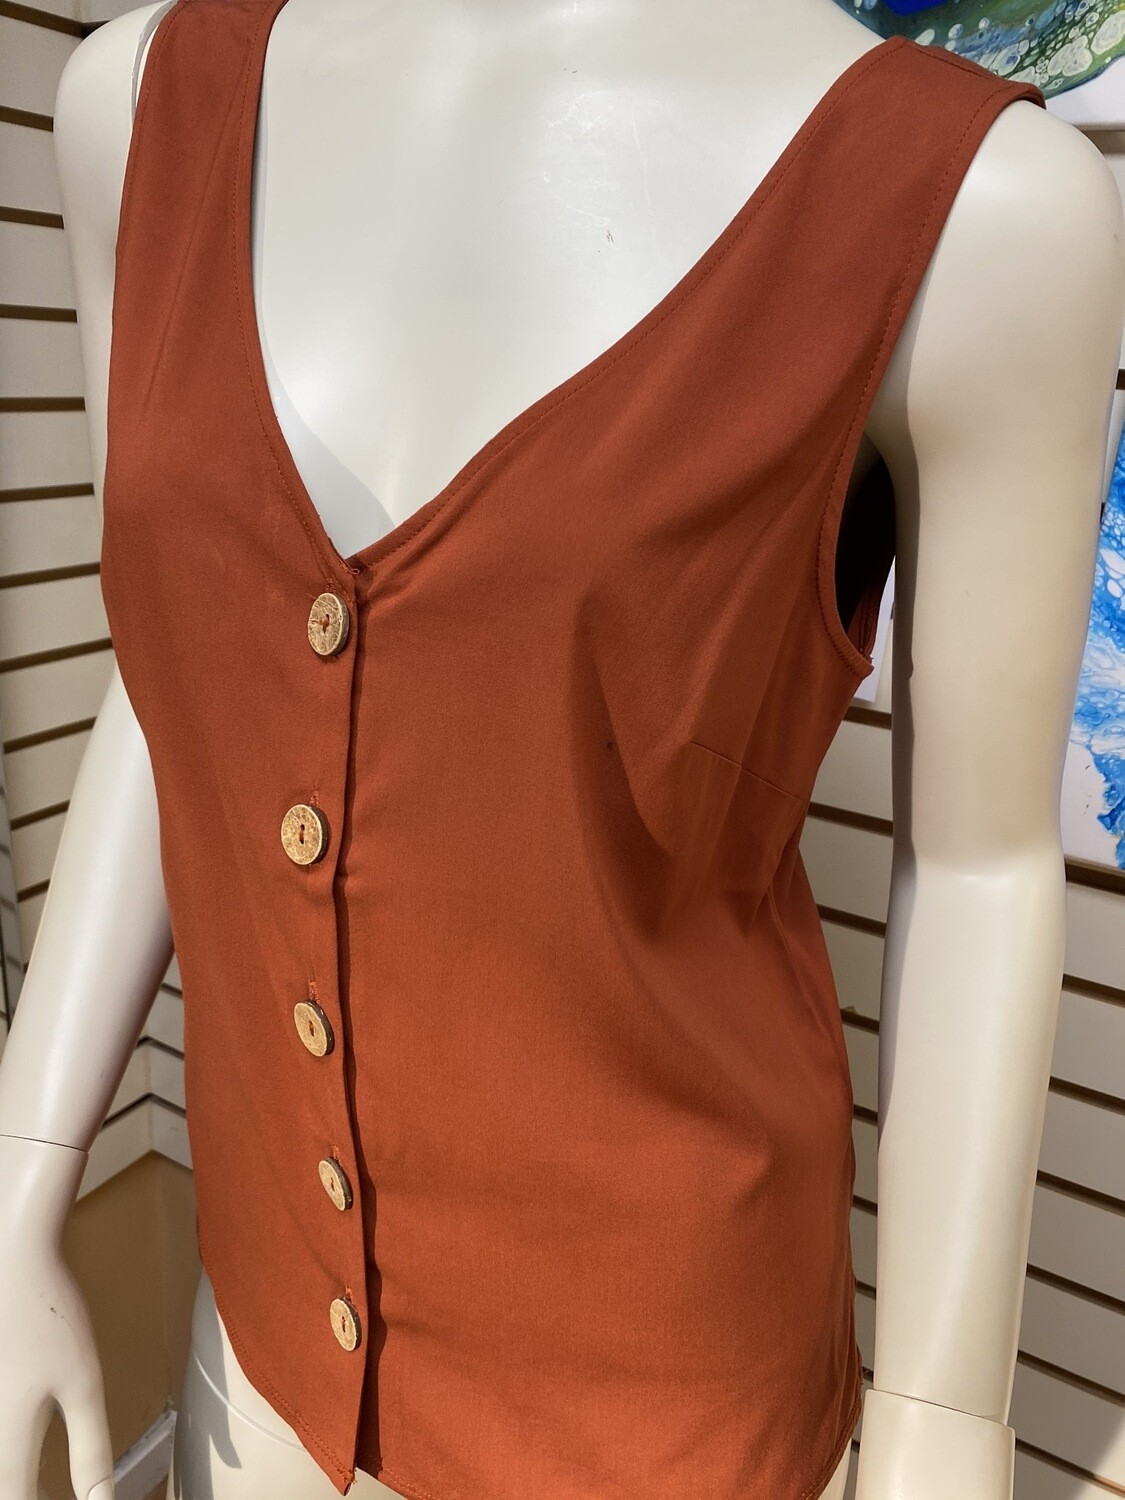 Apricot Brick Vest So Soft. Wood Button Detail Also Available In White.